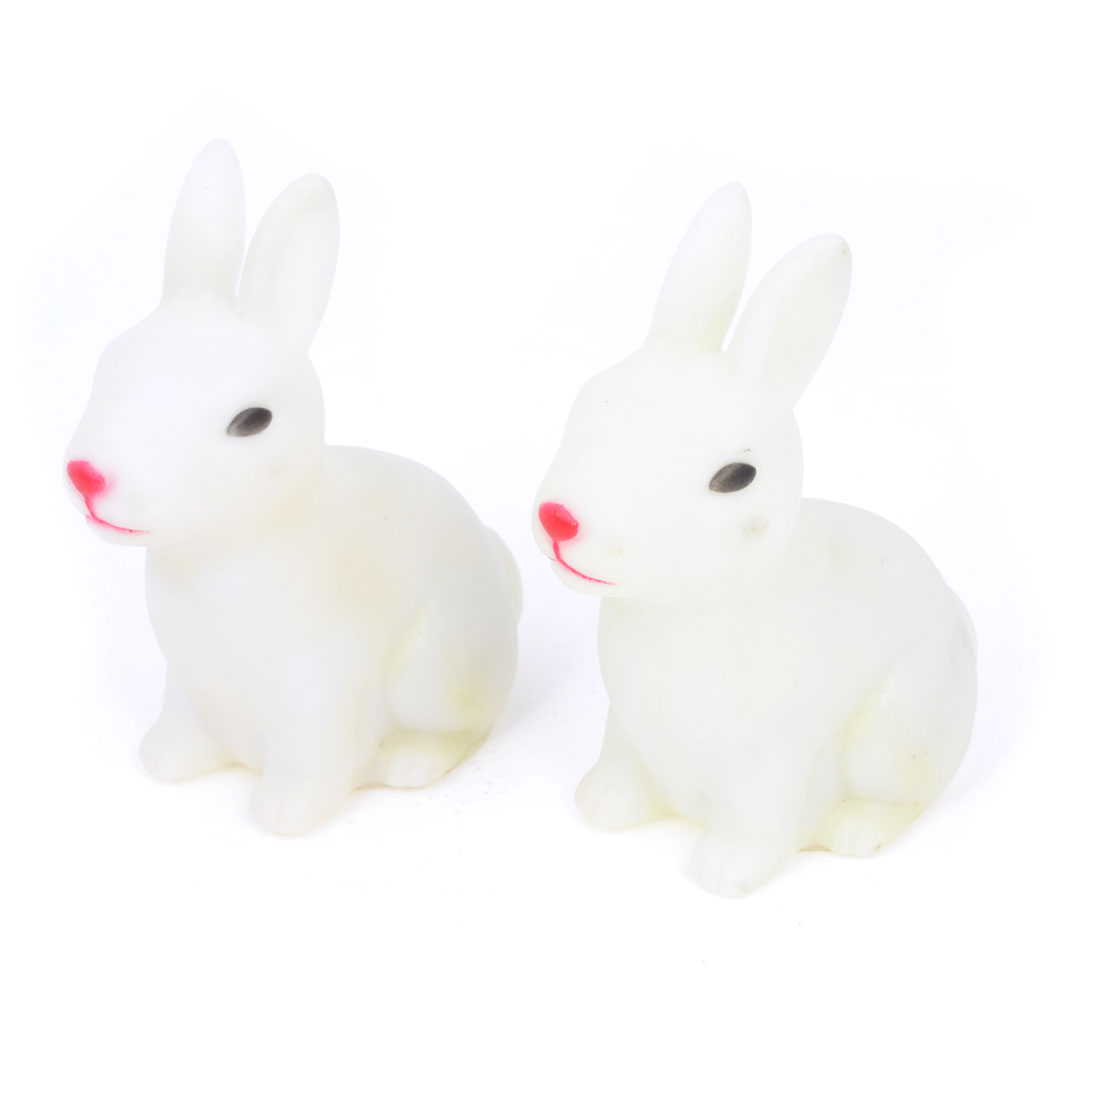 Home Decor Rabbit Design Multicolor Night Light LED Lamp Gift White 2 Pcs